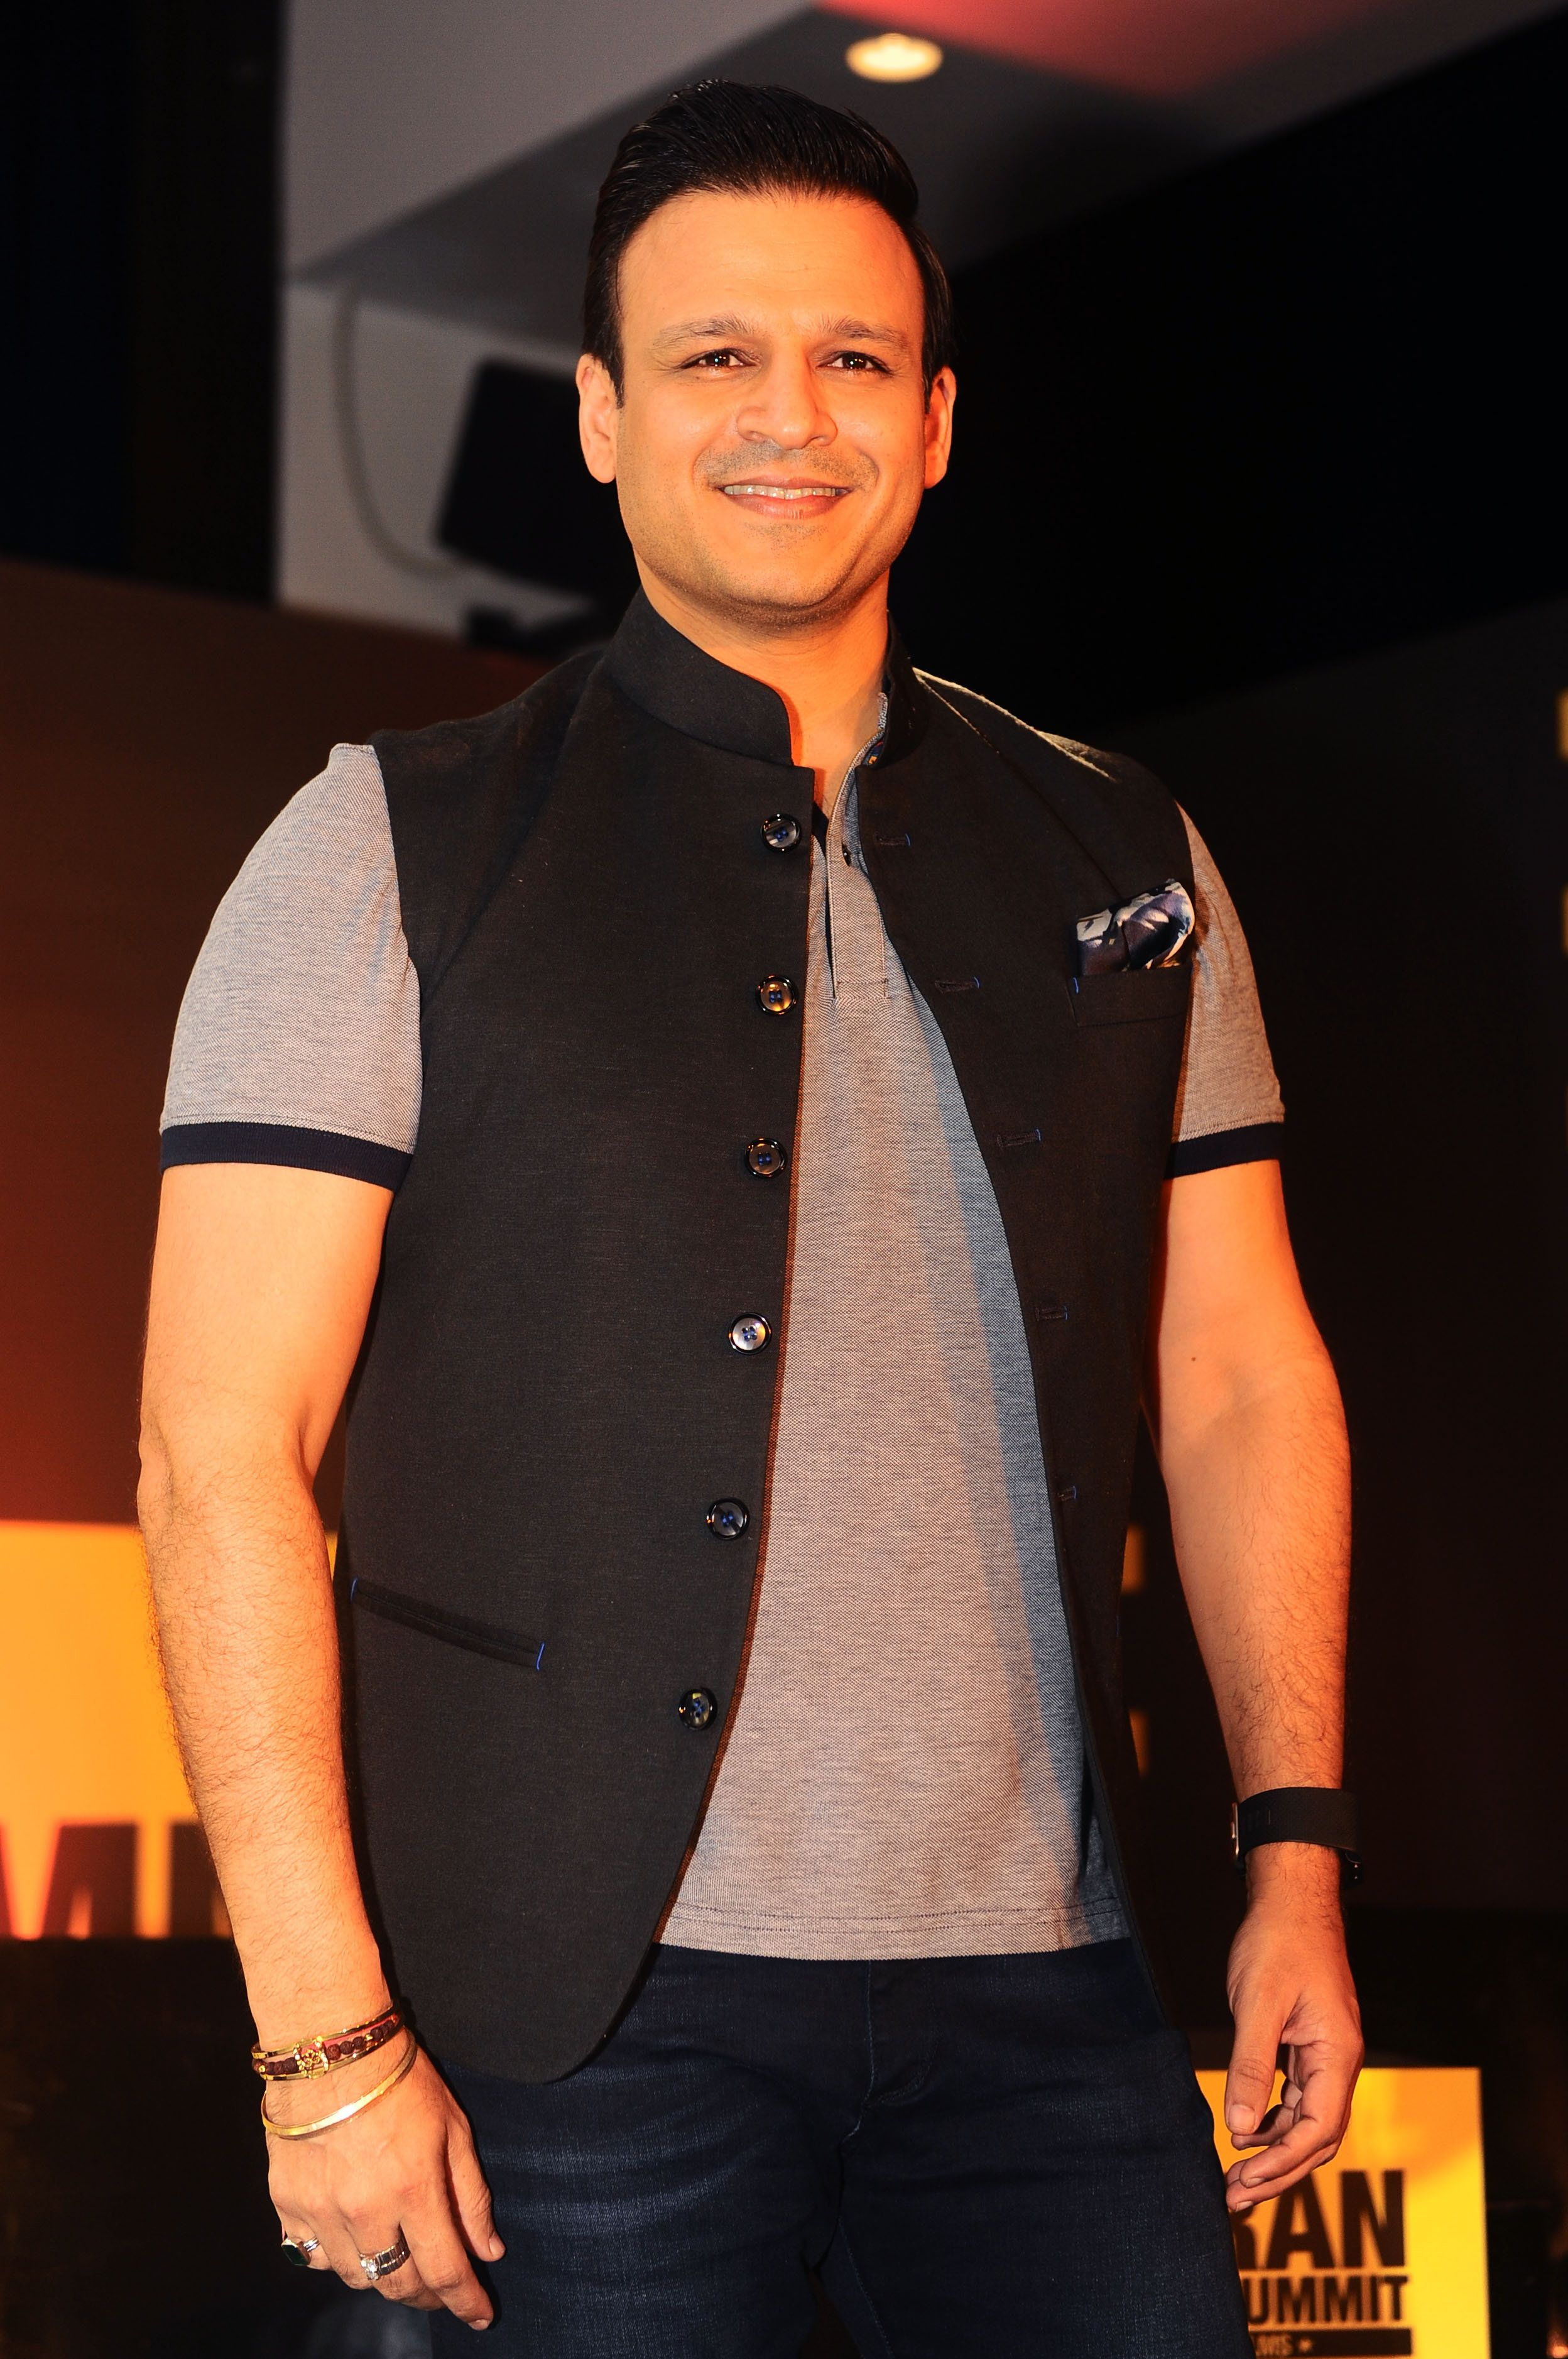 Vivek Oberoi Among 40 Star Campaigners For BJP In